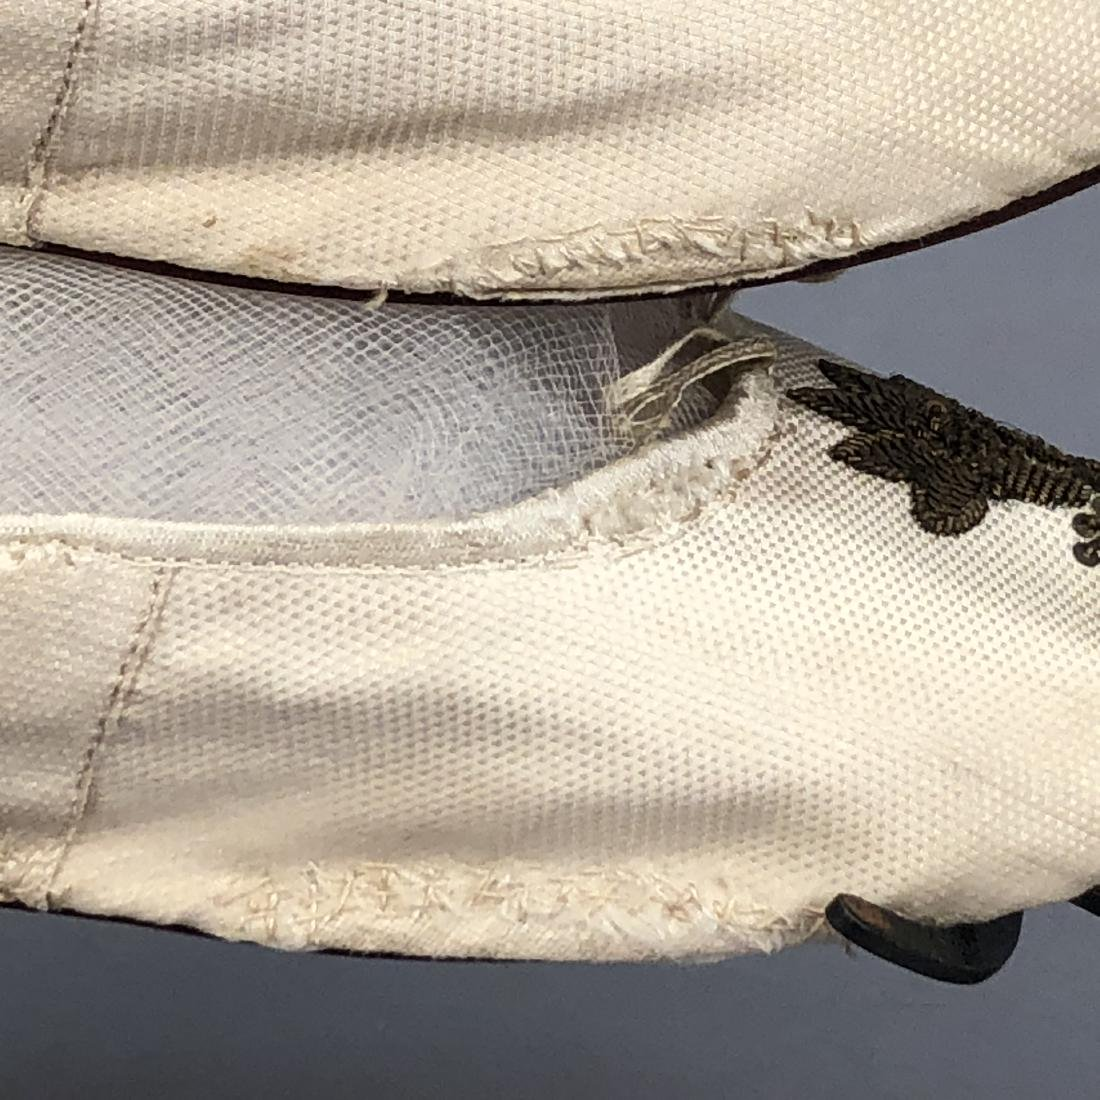 FIGURED SILK SHOES with METALLIC EMBROIDERY, c. 1800 - 2